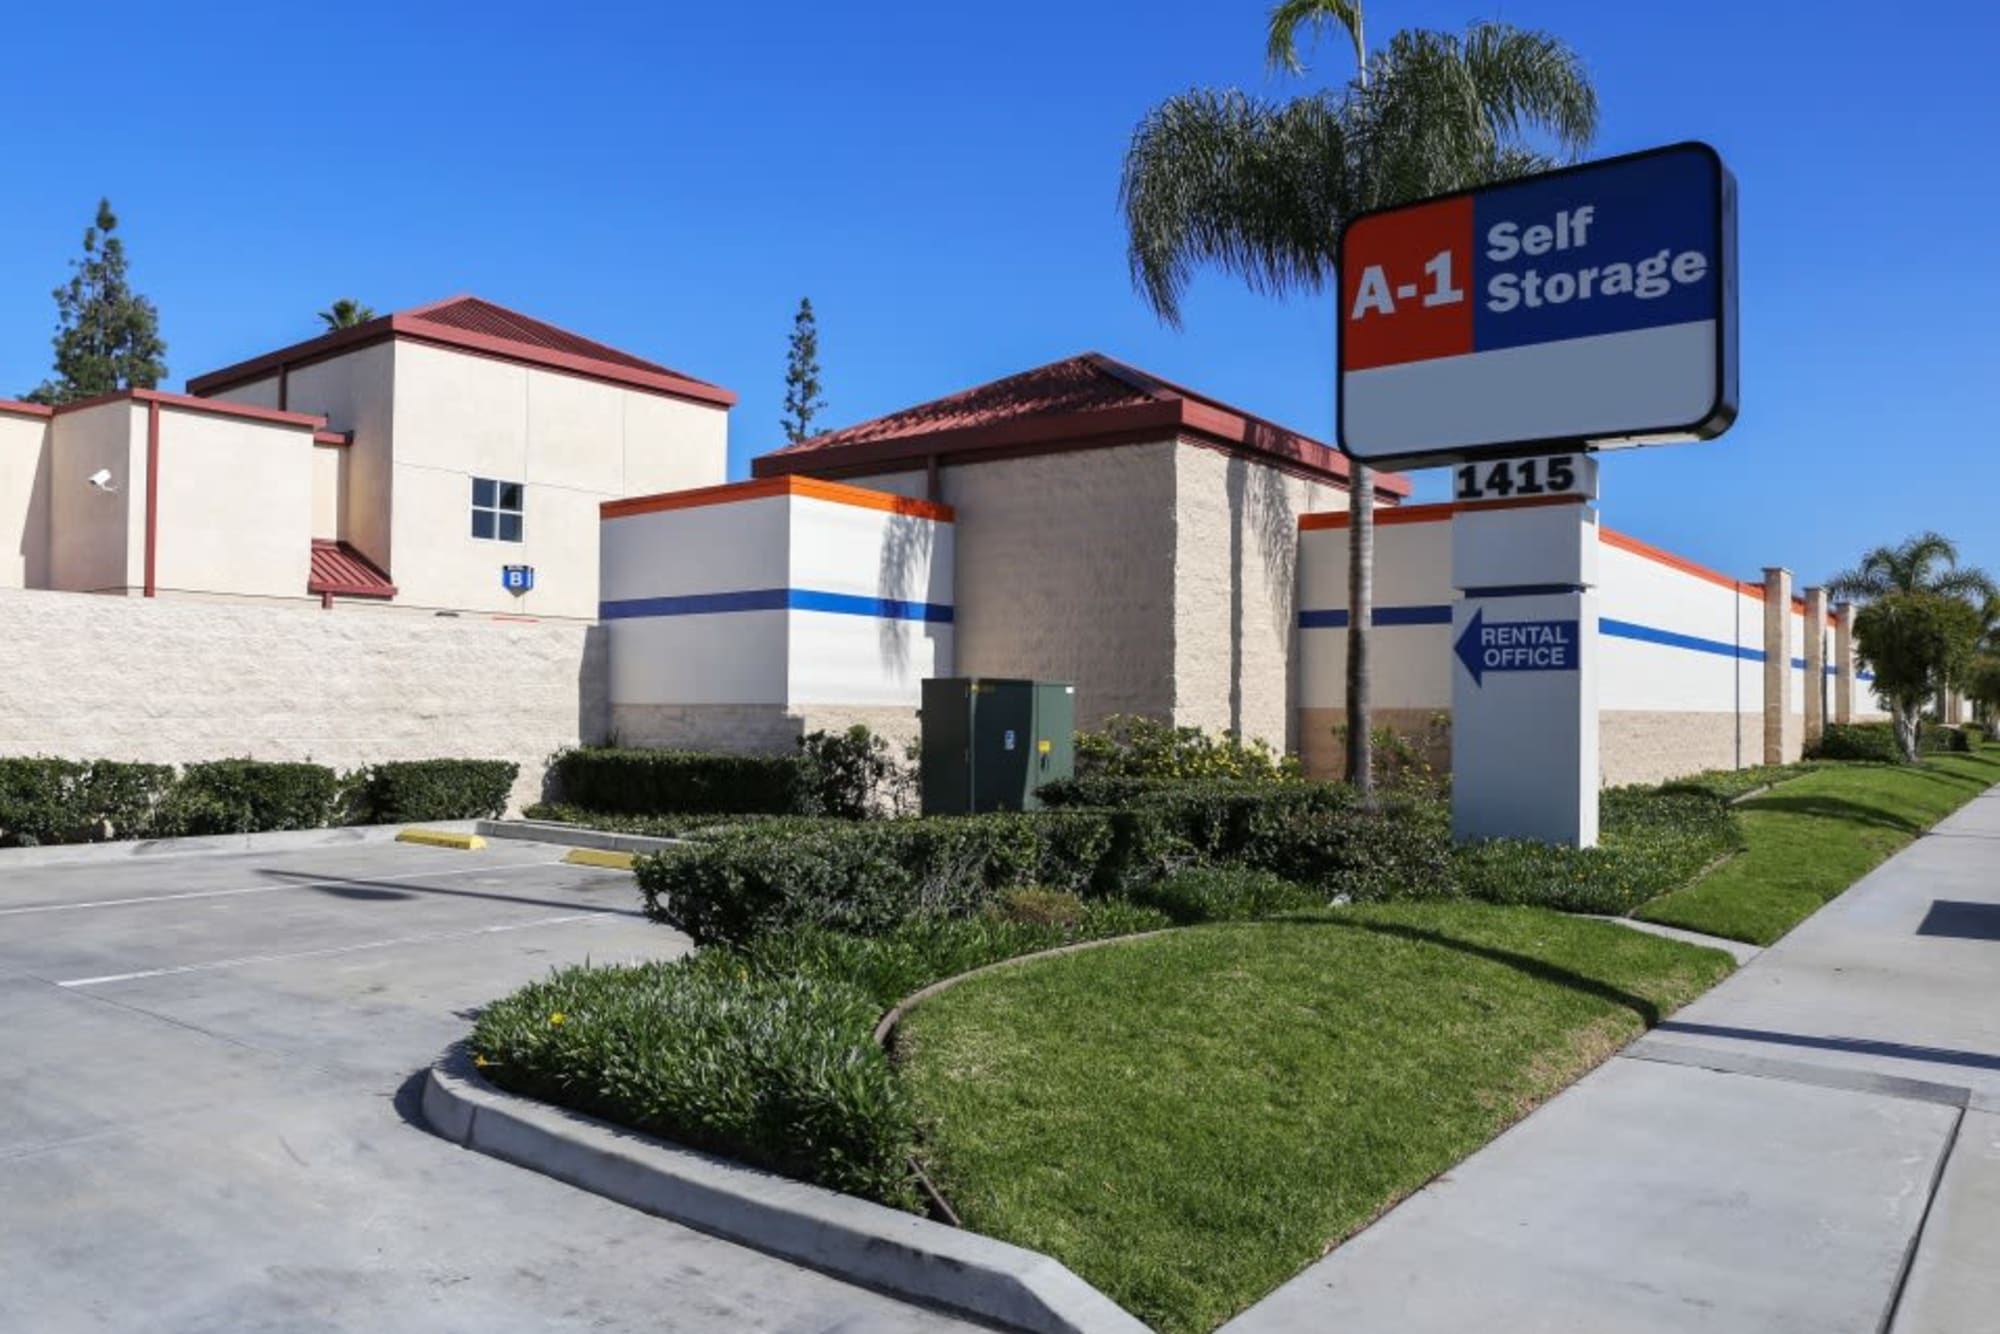 The exterior of A-1 Self Storage from the road.